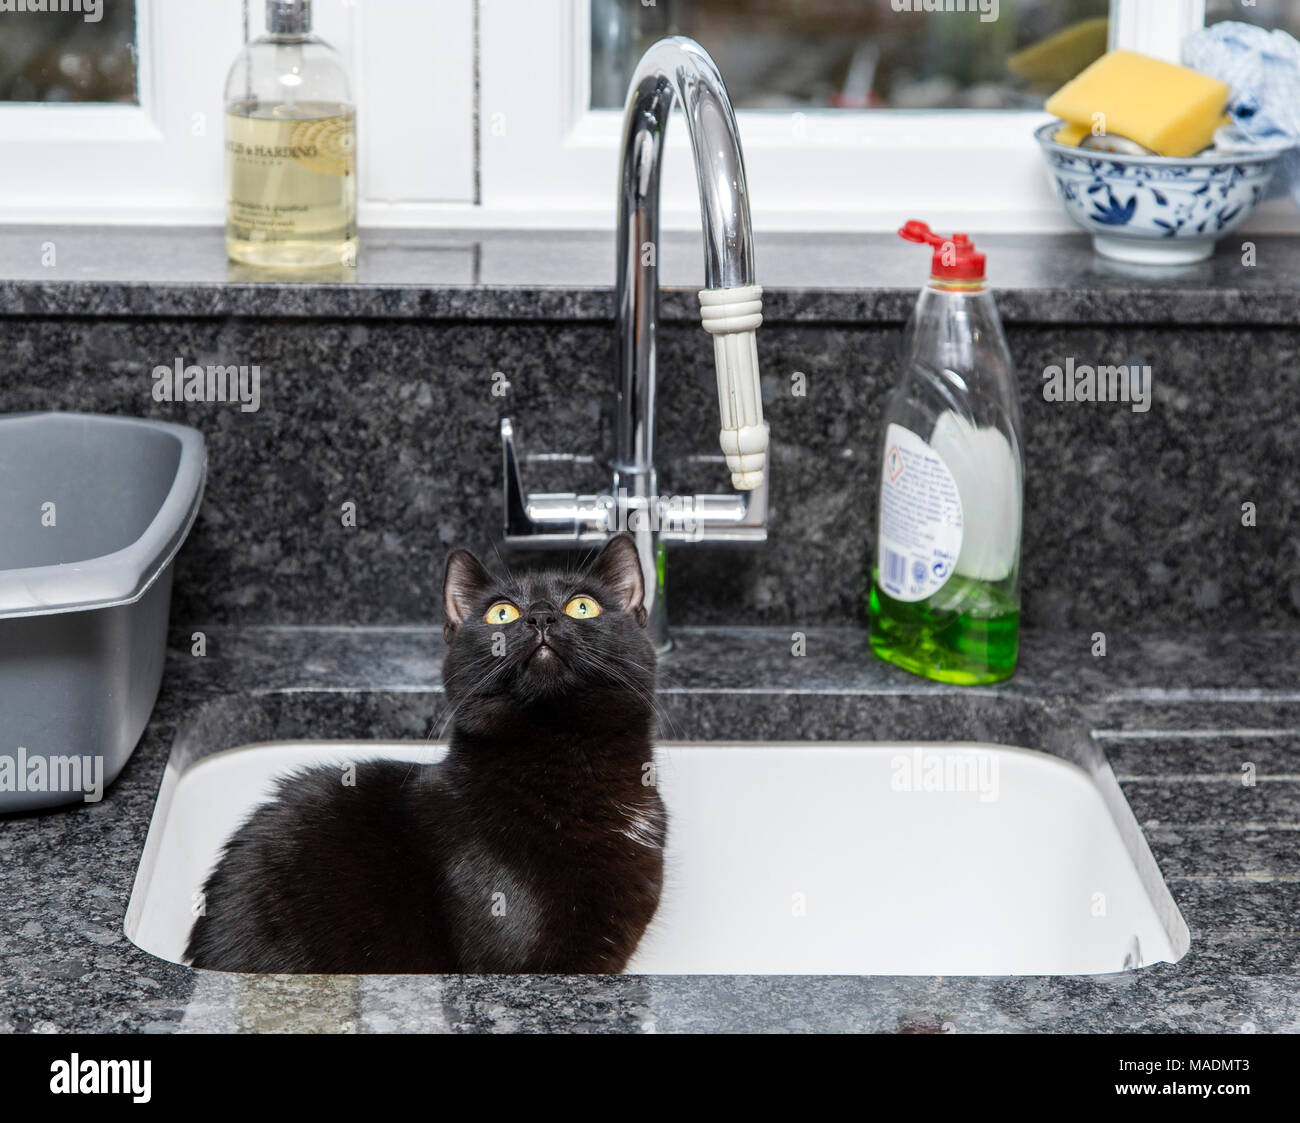 Black cat sat in a kitchen sink - Stock Image